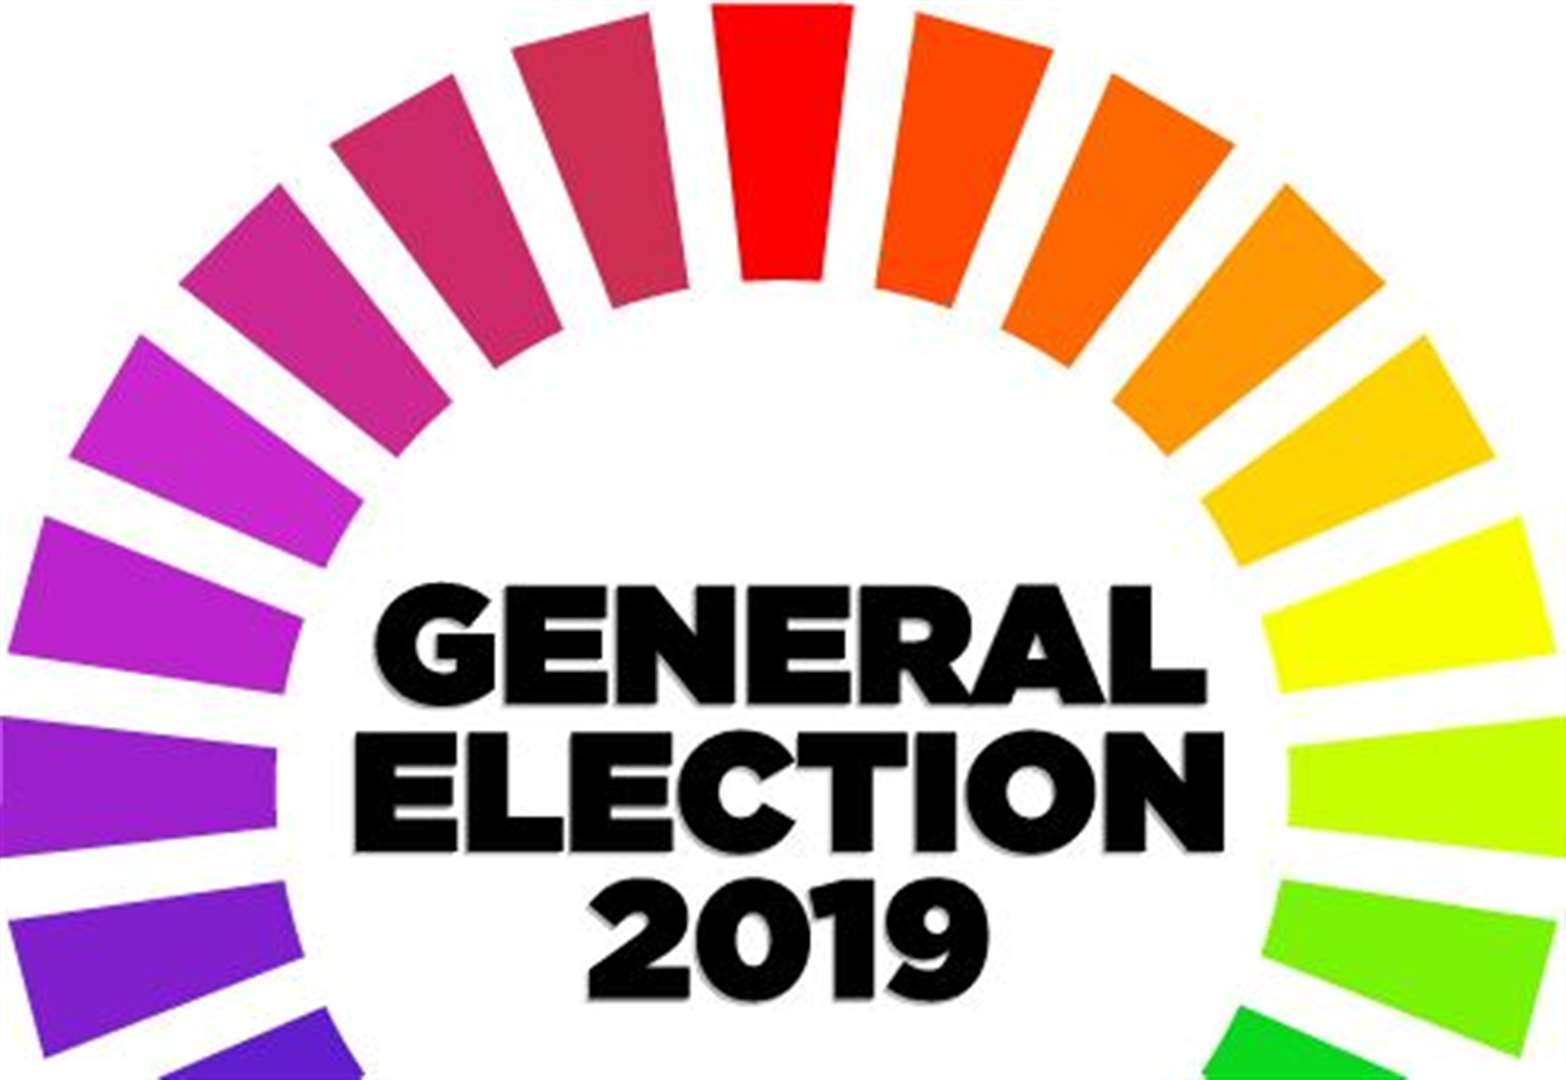 AMENDMENT TO DATE: A hustings is being held in Haverhill for the general election